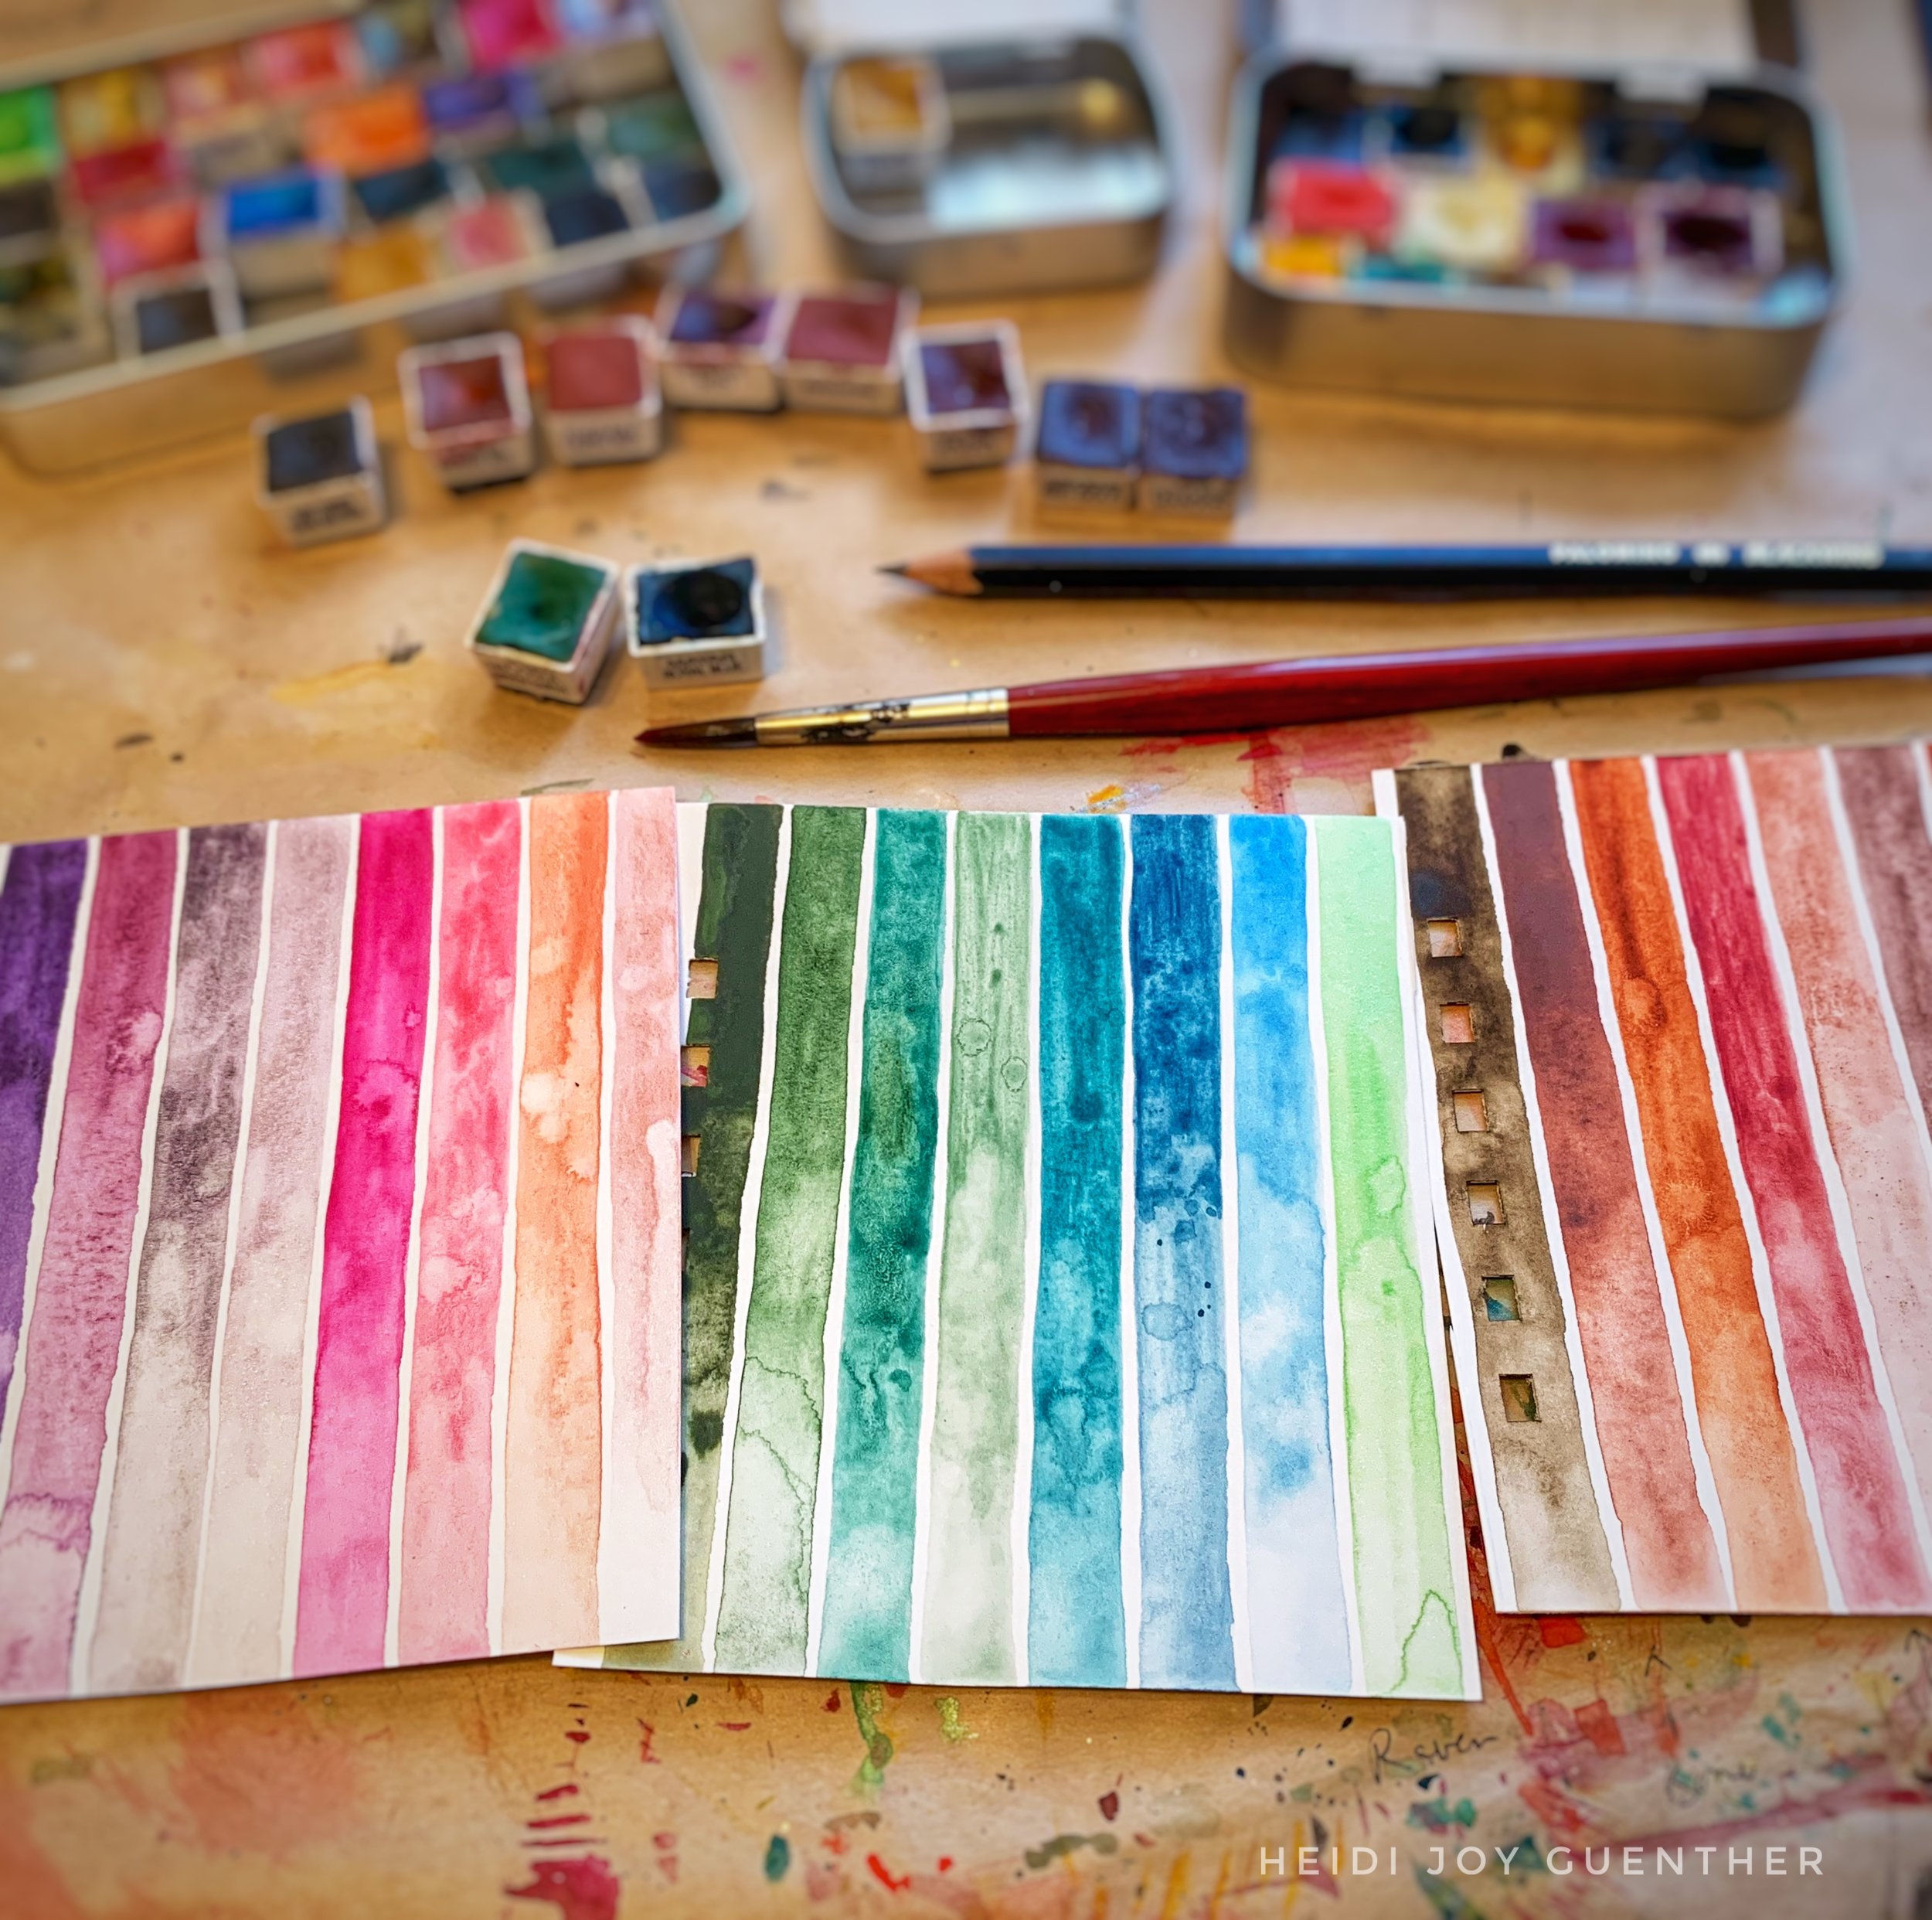 The Stripes exercise is one of my favourite exercises to learn the colour, to practice handling a brush, and to teach how to dilute the colour with water. It's calming, meditative and creates beautiful results!